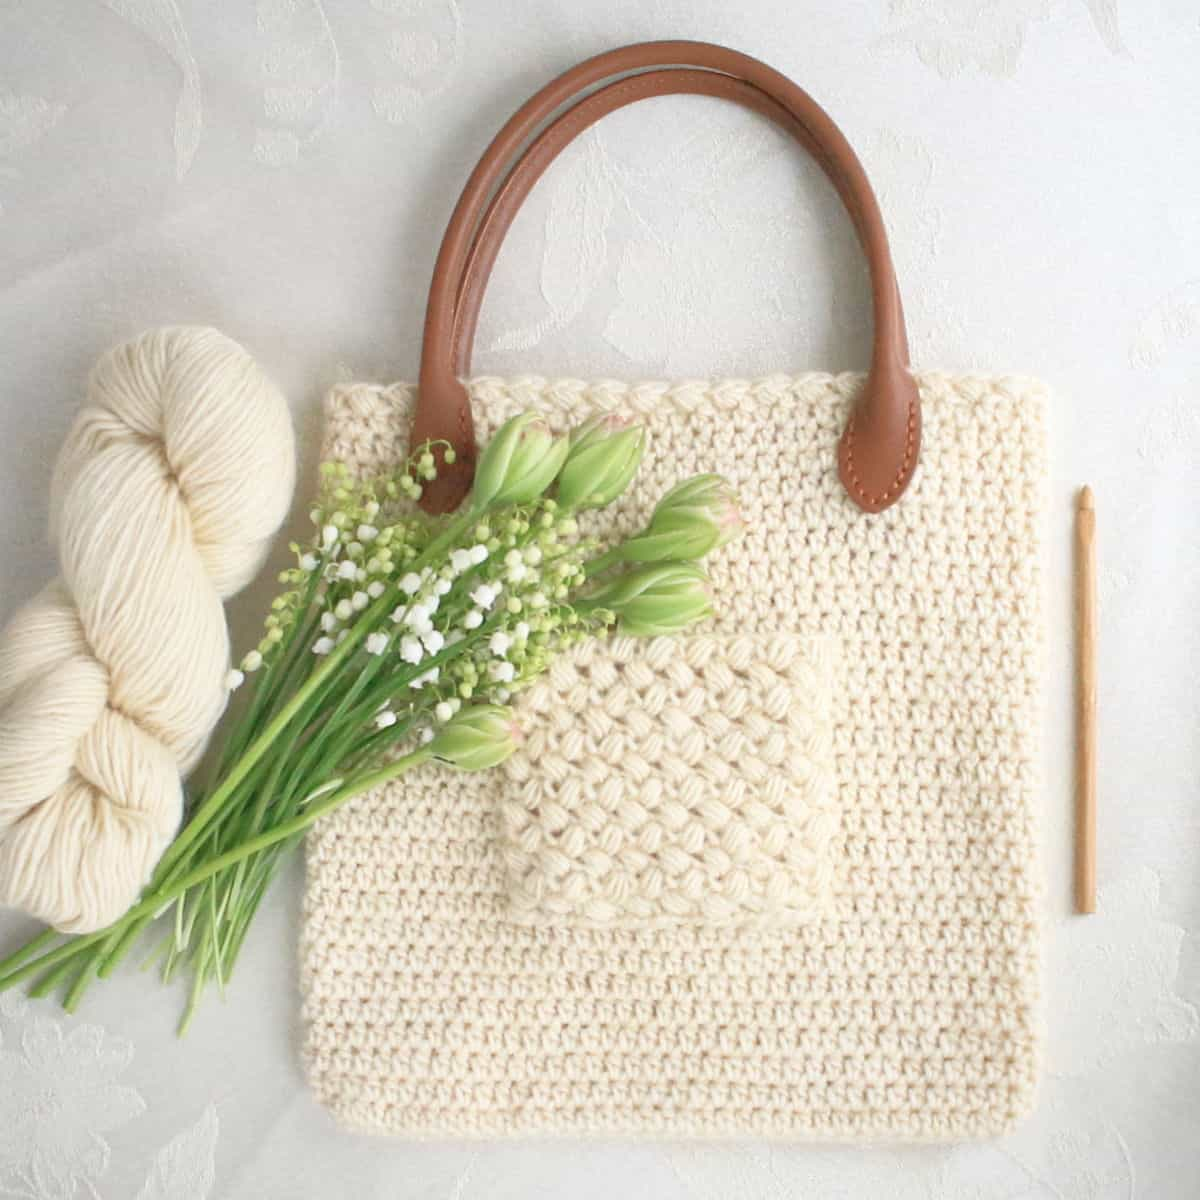 Eligere Bag with Pocket and Spring Flowers